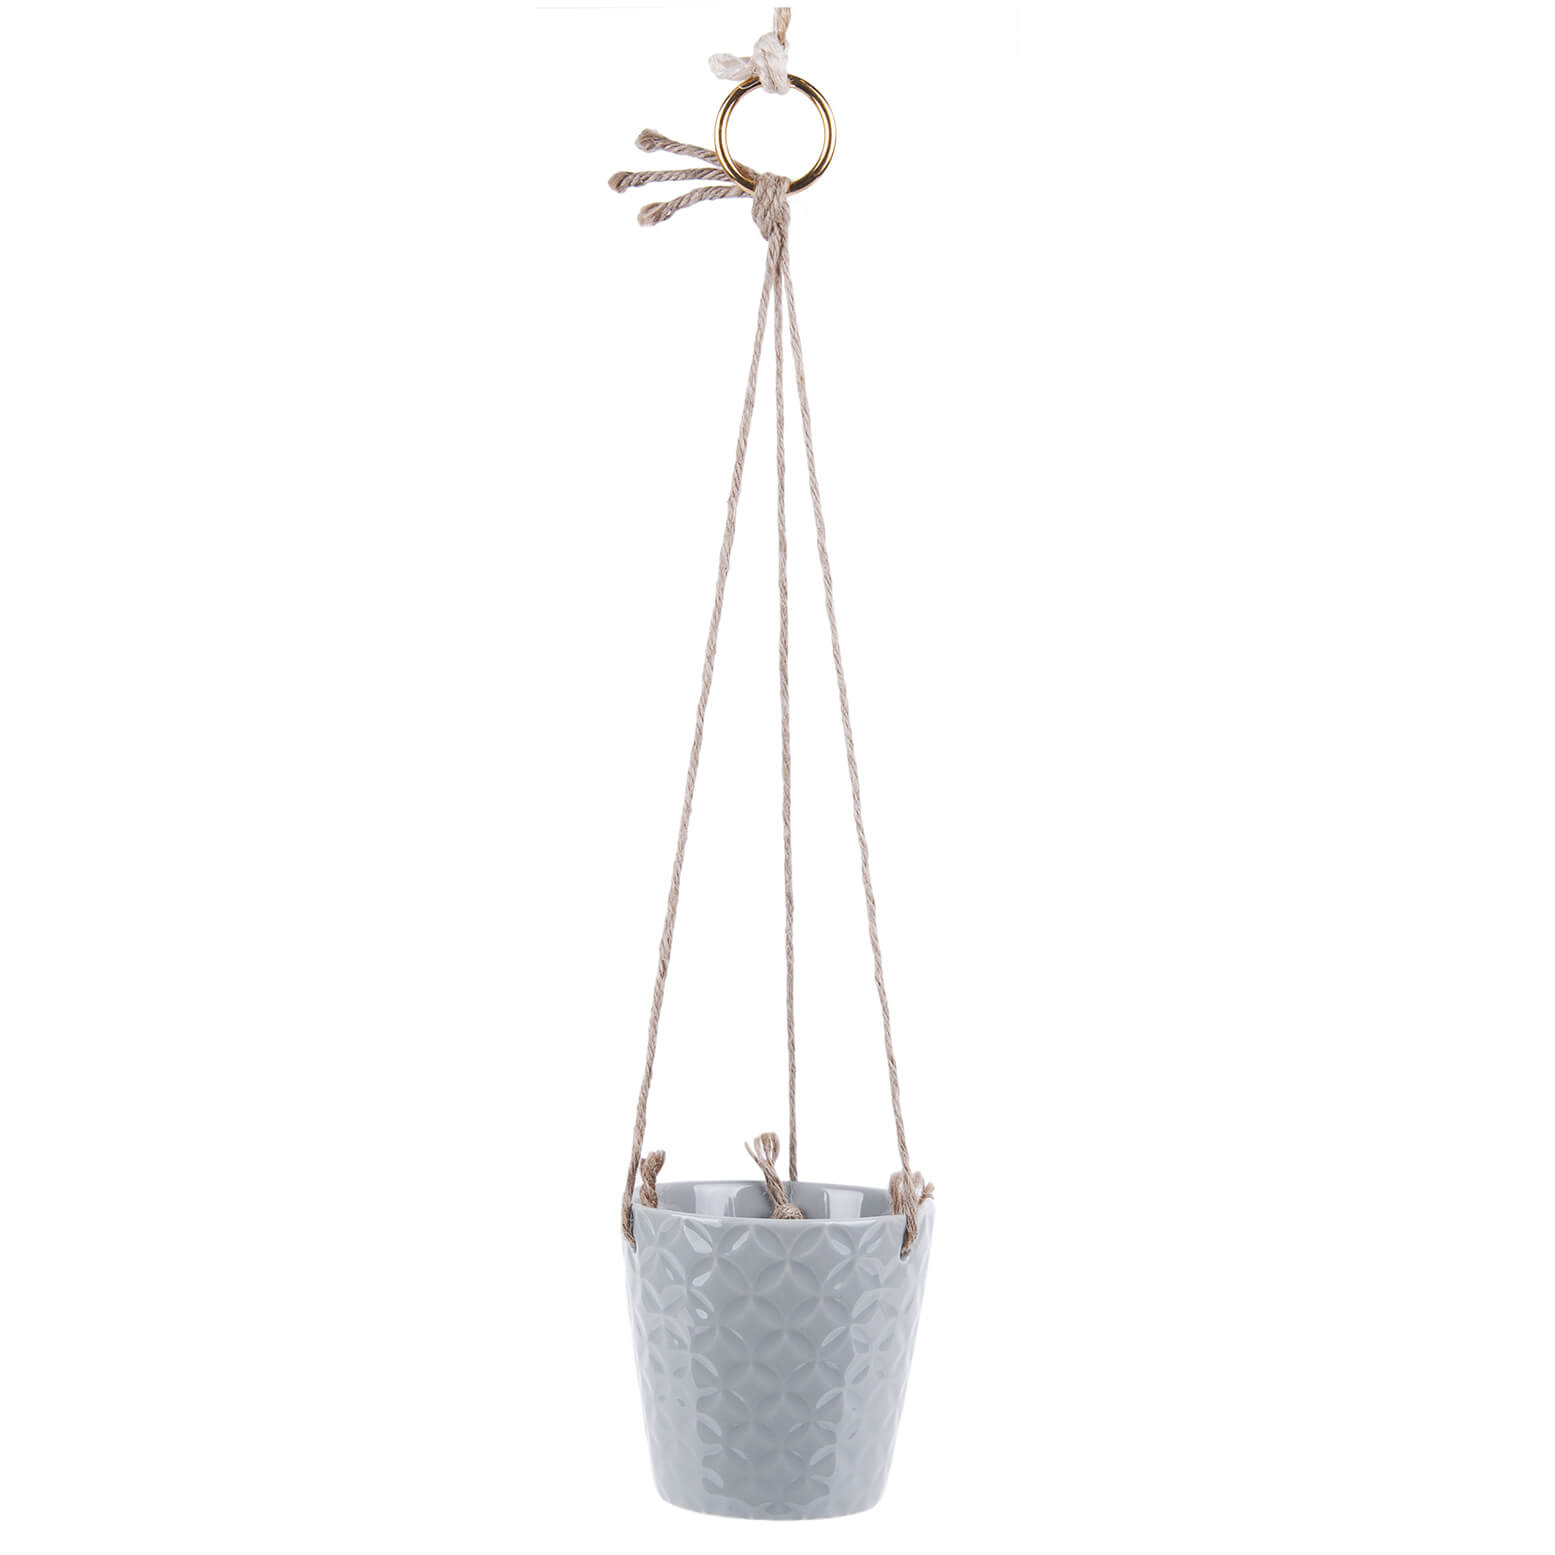 Present Time Hew Ceramic Hanging Pot - Mouse Grey